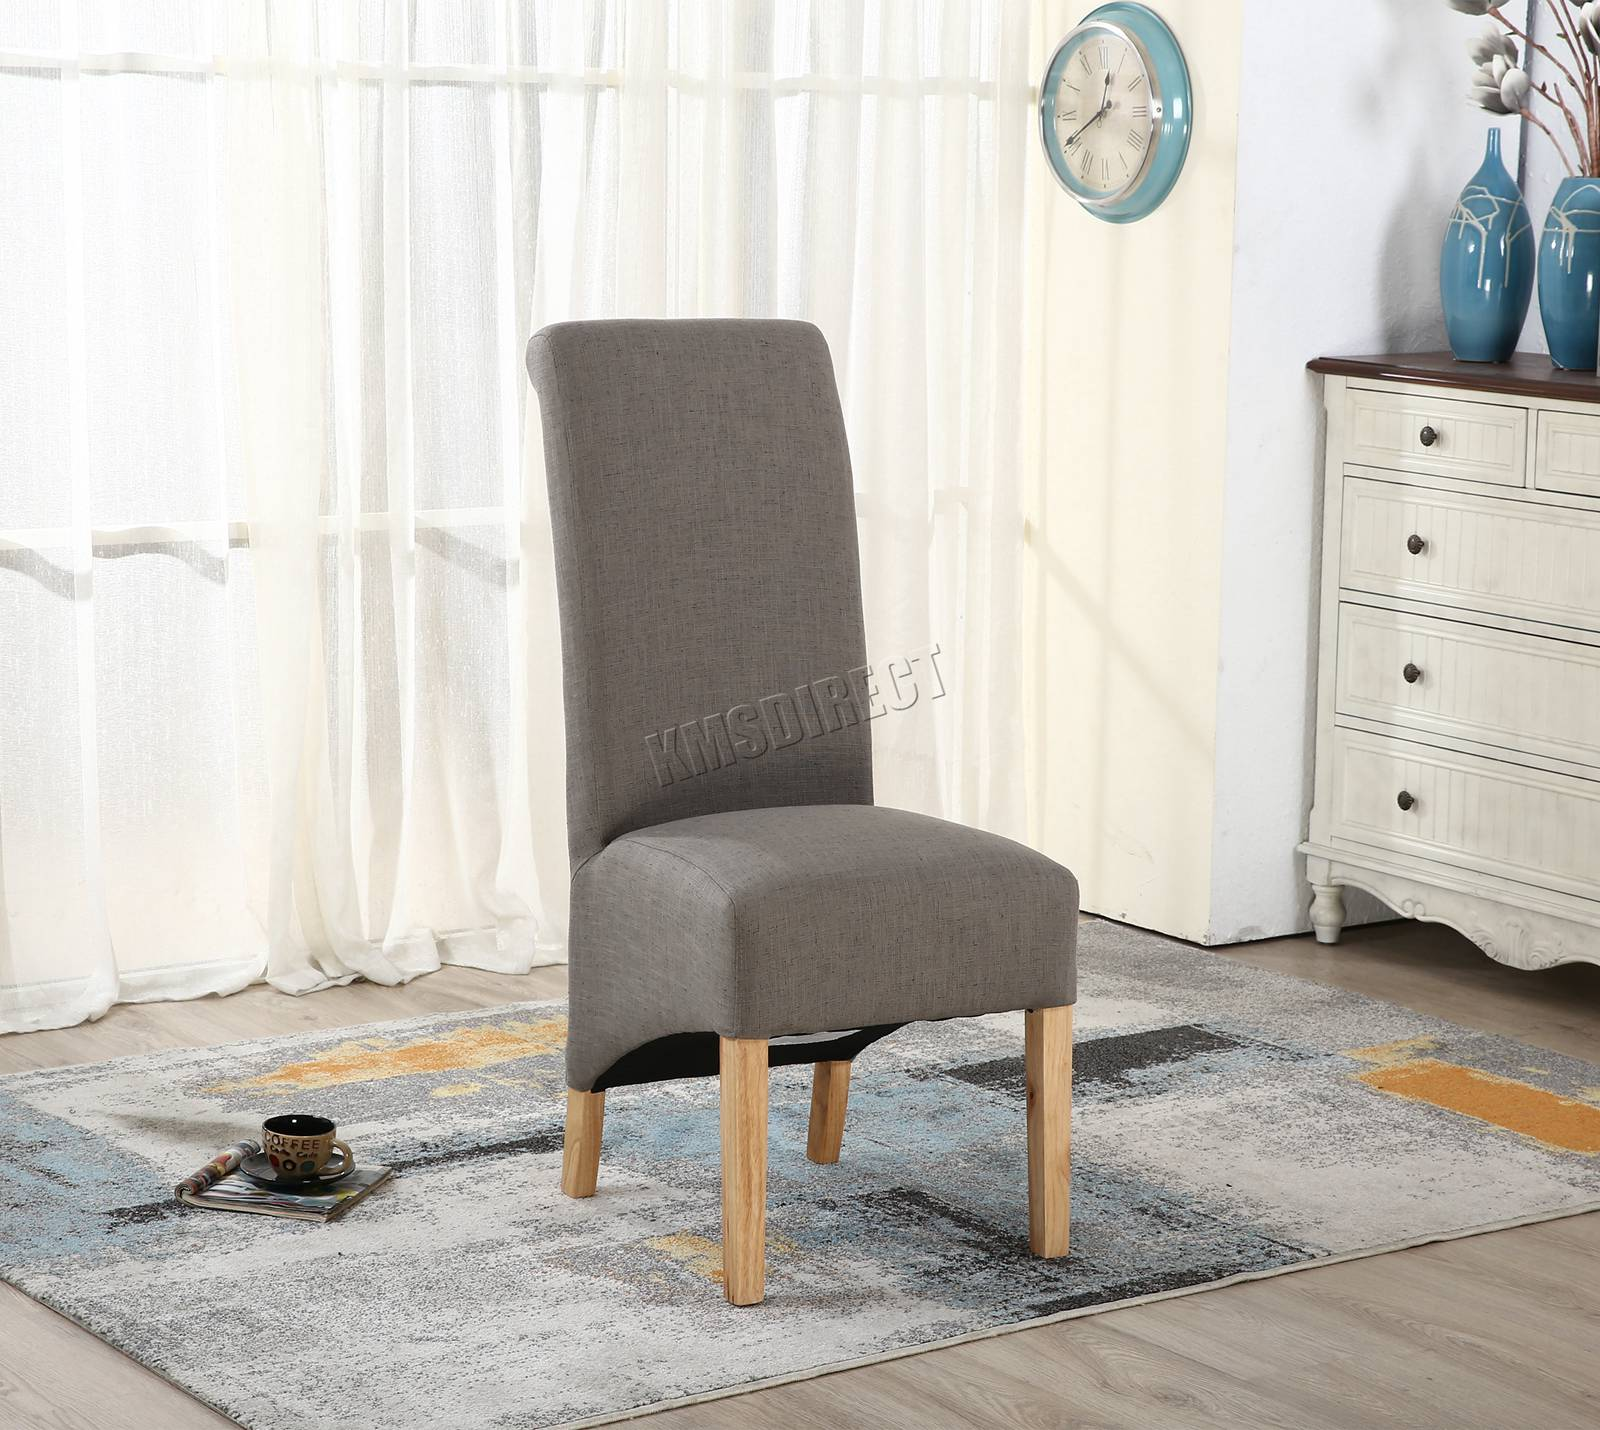 Westwood New Linen Fabric Dining Chairs Roll Top Scroll